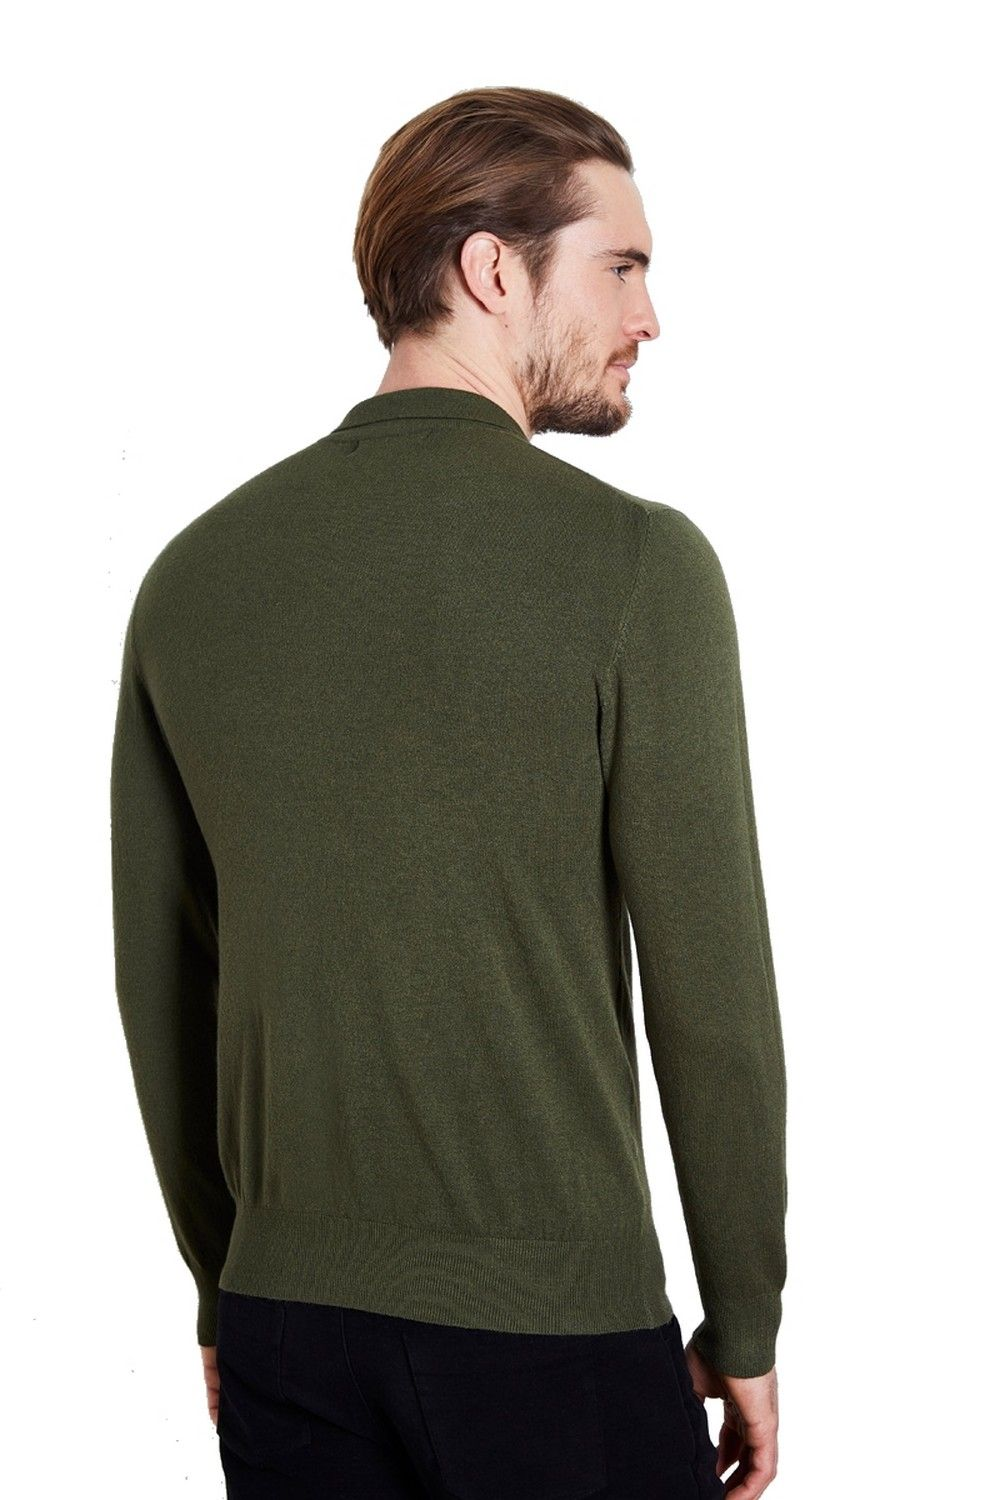 William De Faye Polo Neck Sweater with Buttons in Khaki